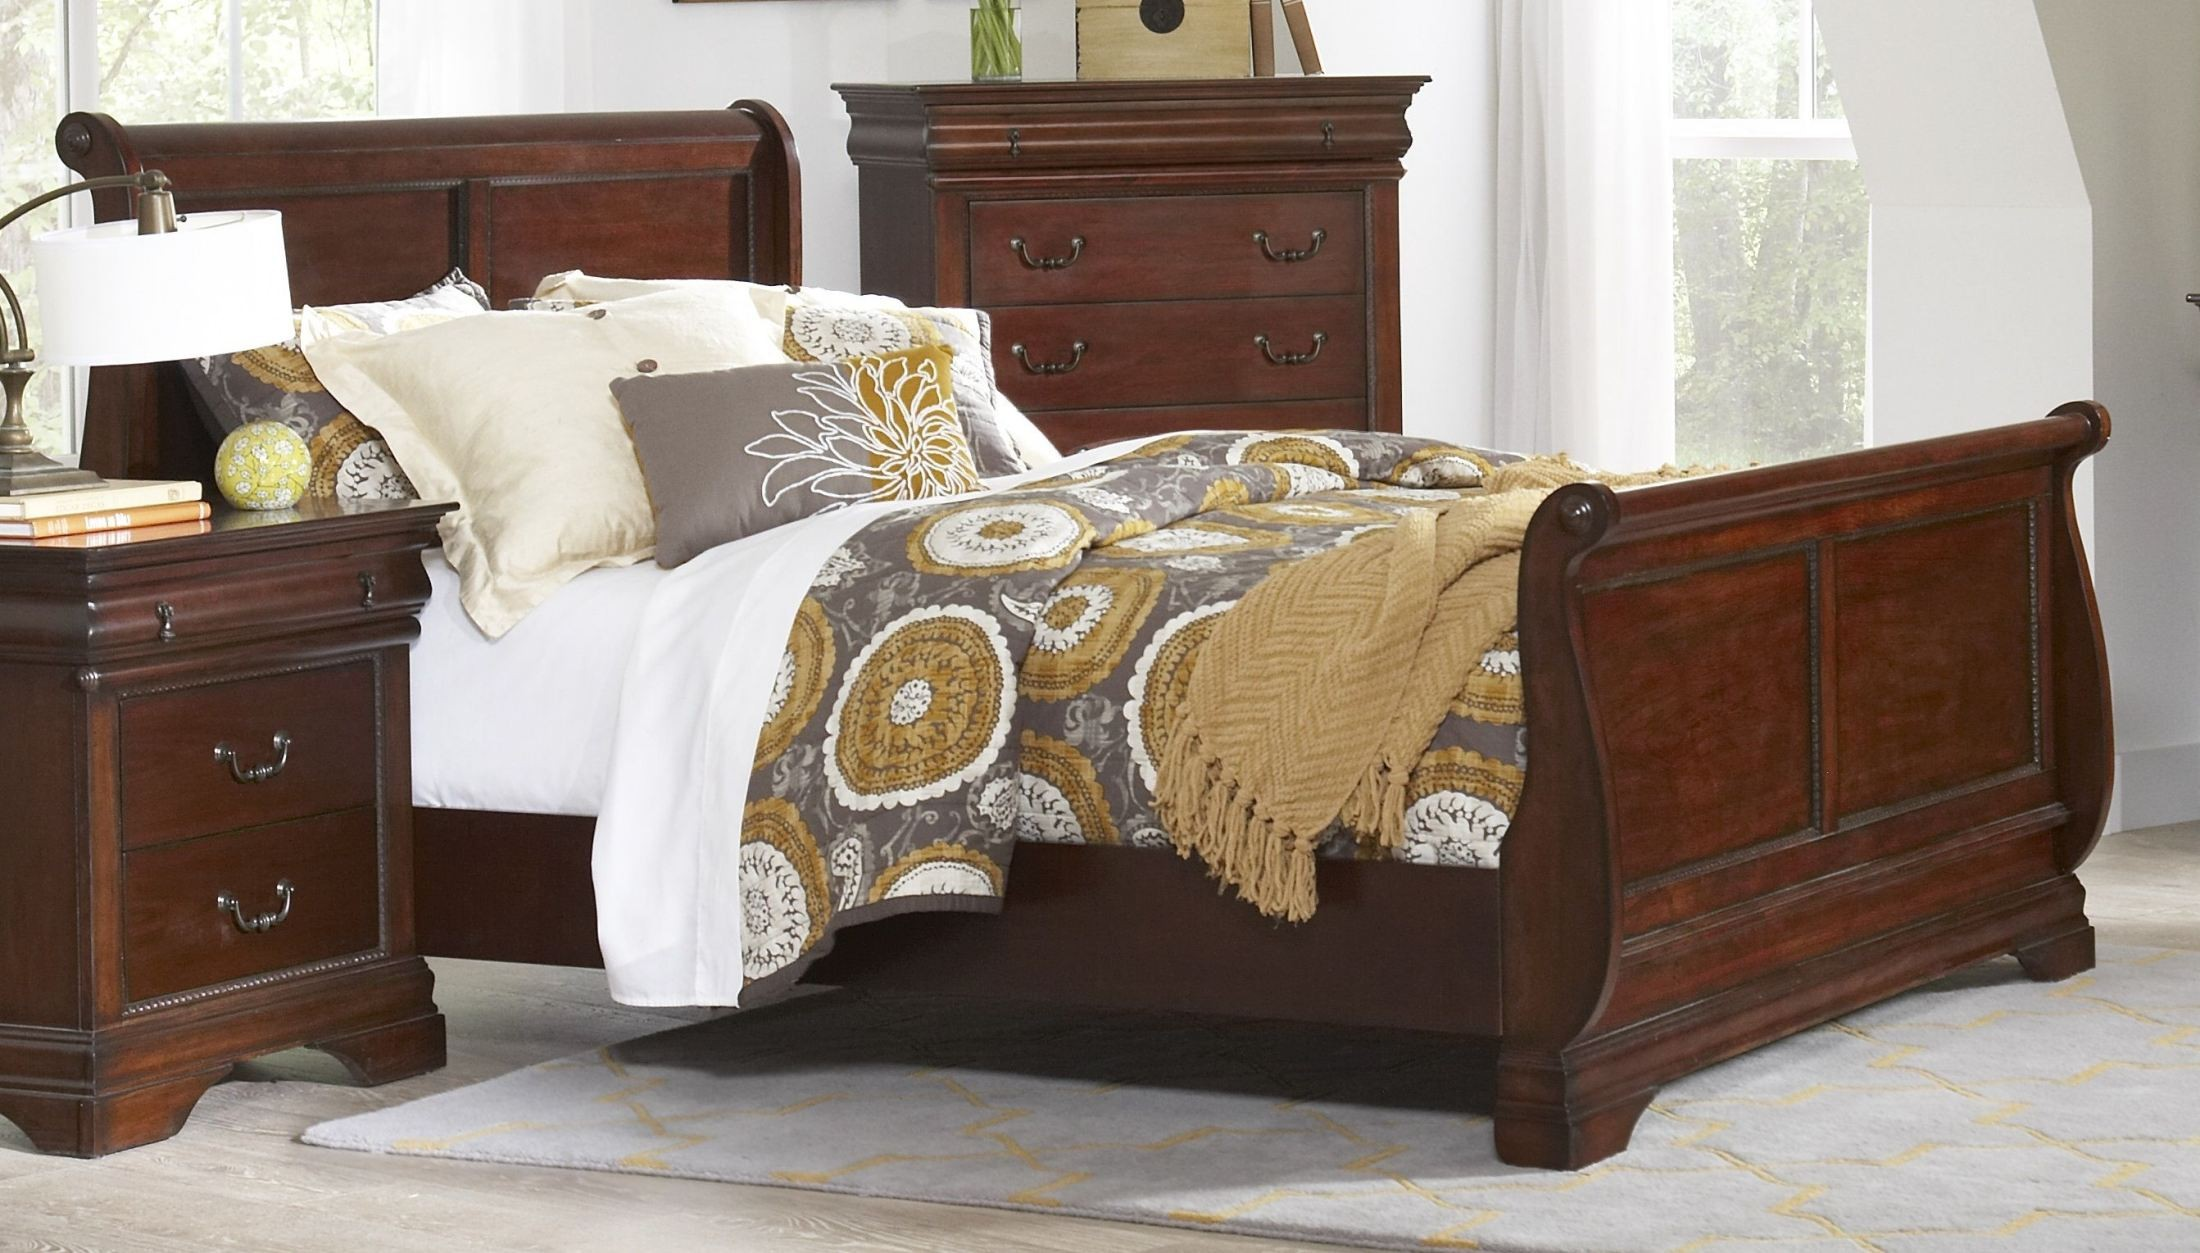 Chateau vintage cherry full sleigh bed from largo coleman furniture for Full size sleigh bedroom sets